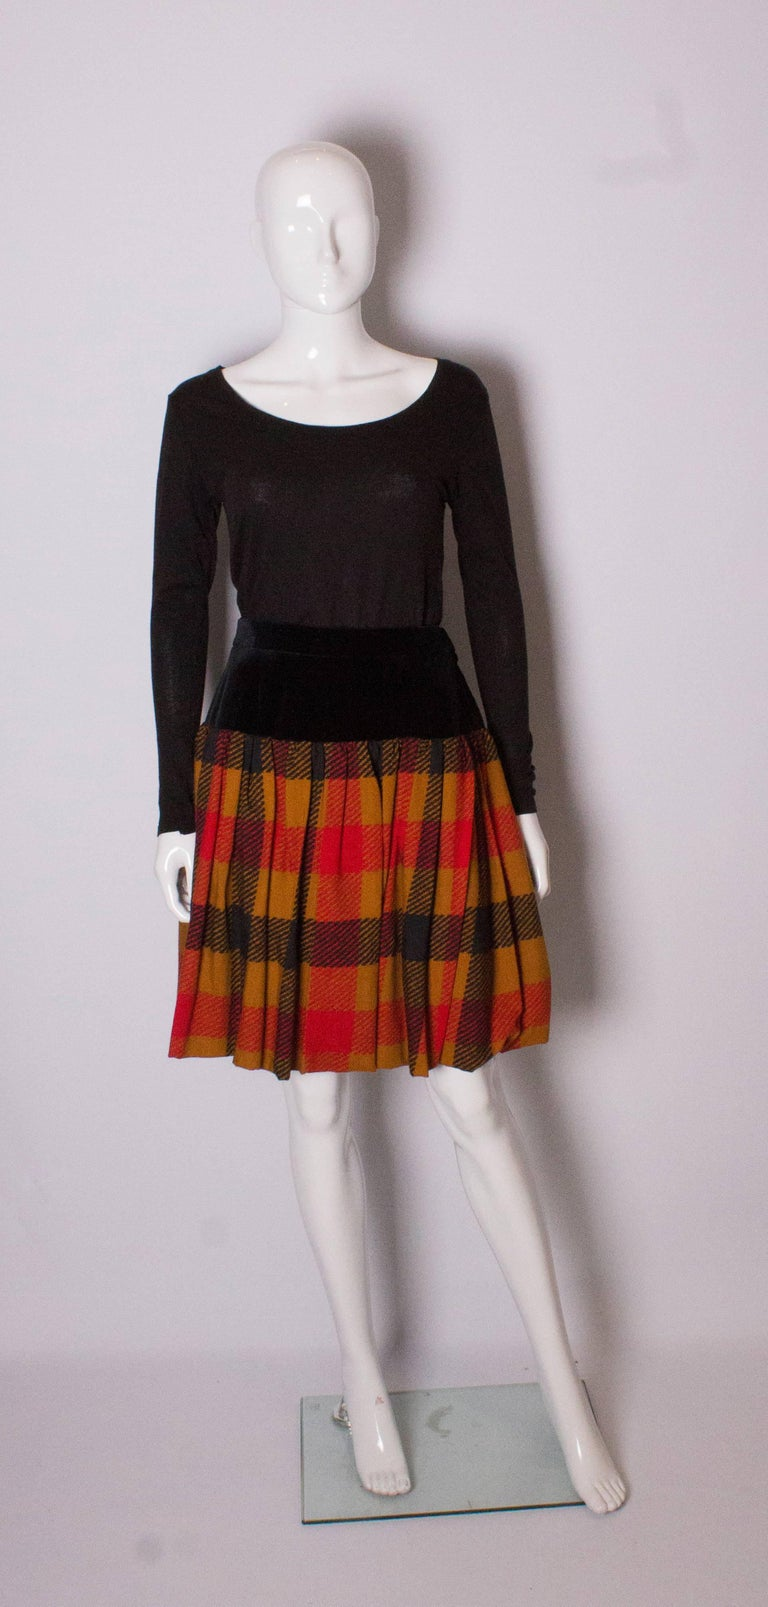 A great skirt by Yves Saint Laurent, Rve Gauche line. The skirt has a black velvet panel below the waist and then a gathered  caramel check wool section. The skirt has a 6'' hem and can be let down if required. The skirt is fully lined and has